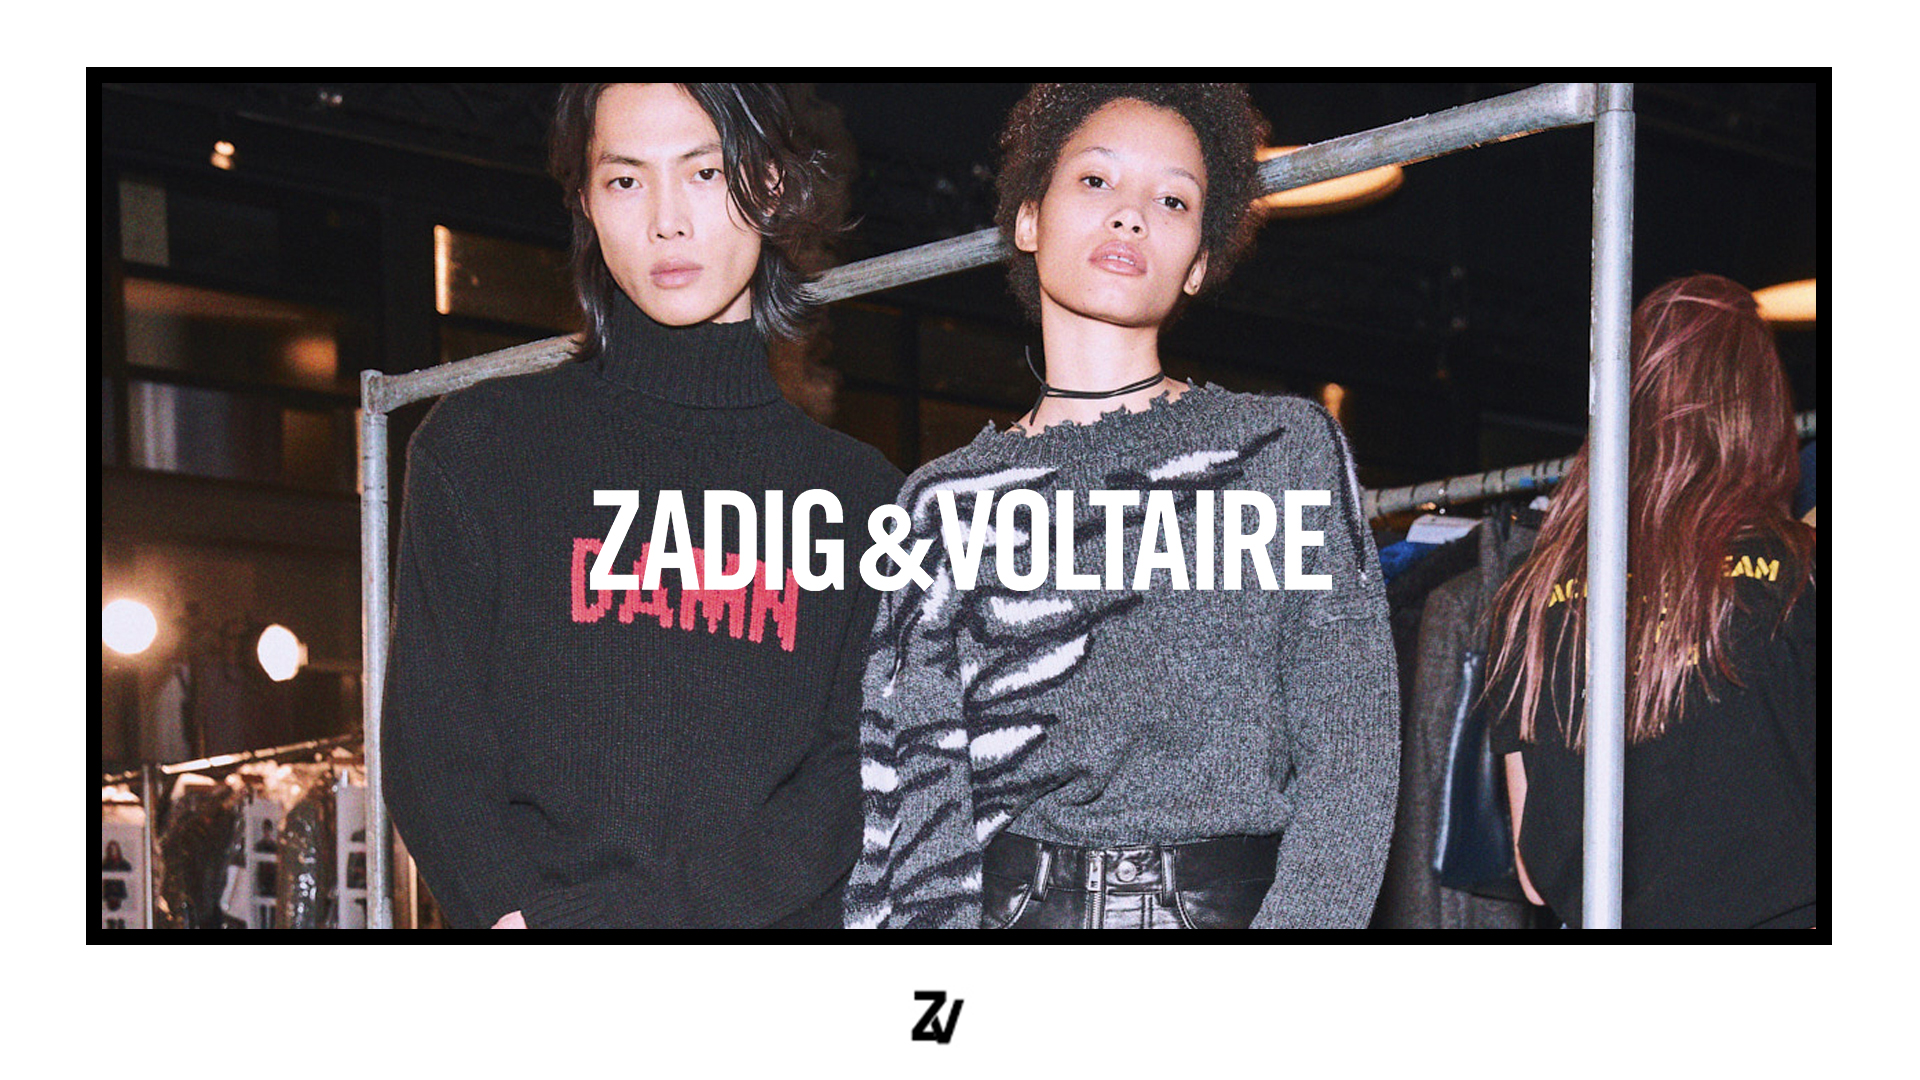 Two models wearing Zadig&Voltaire clothes